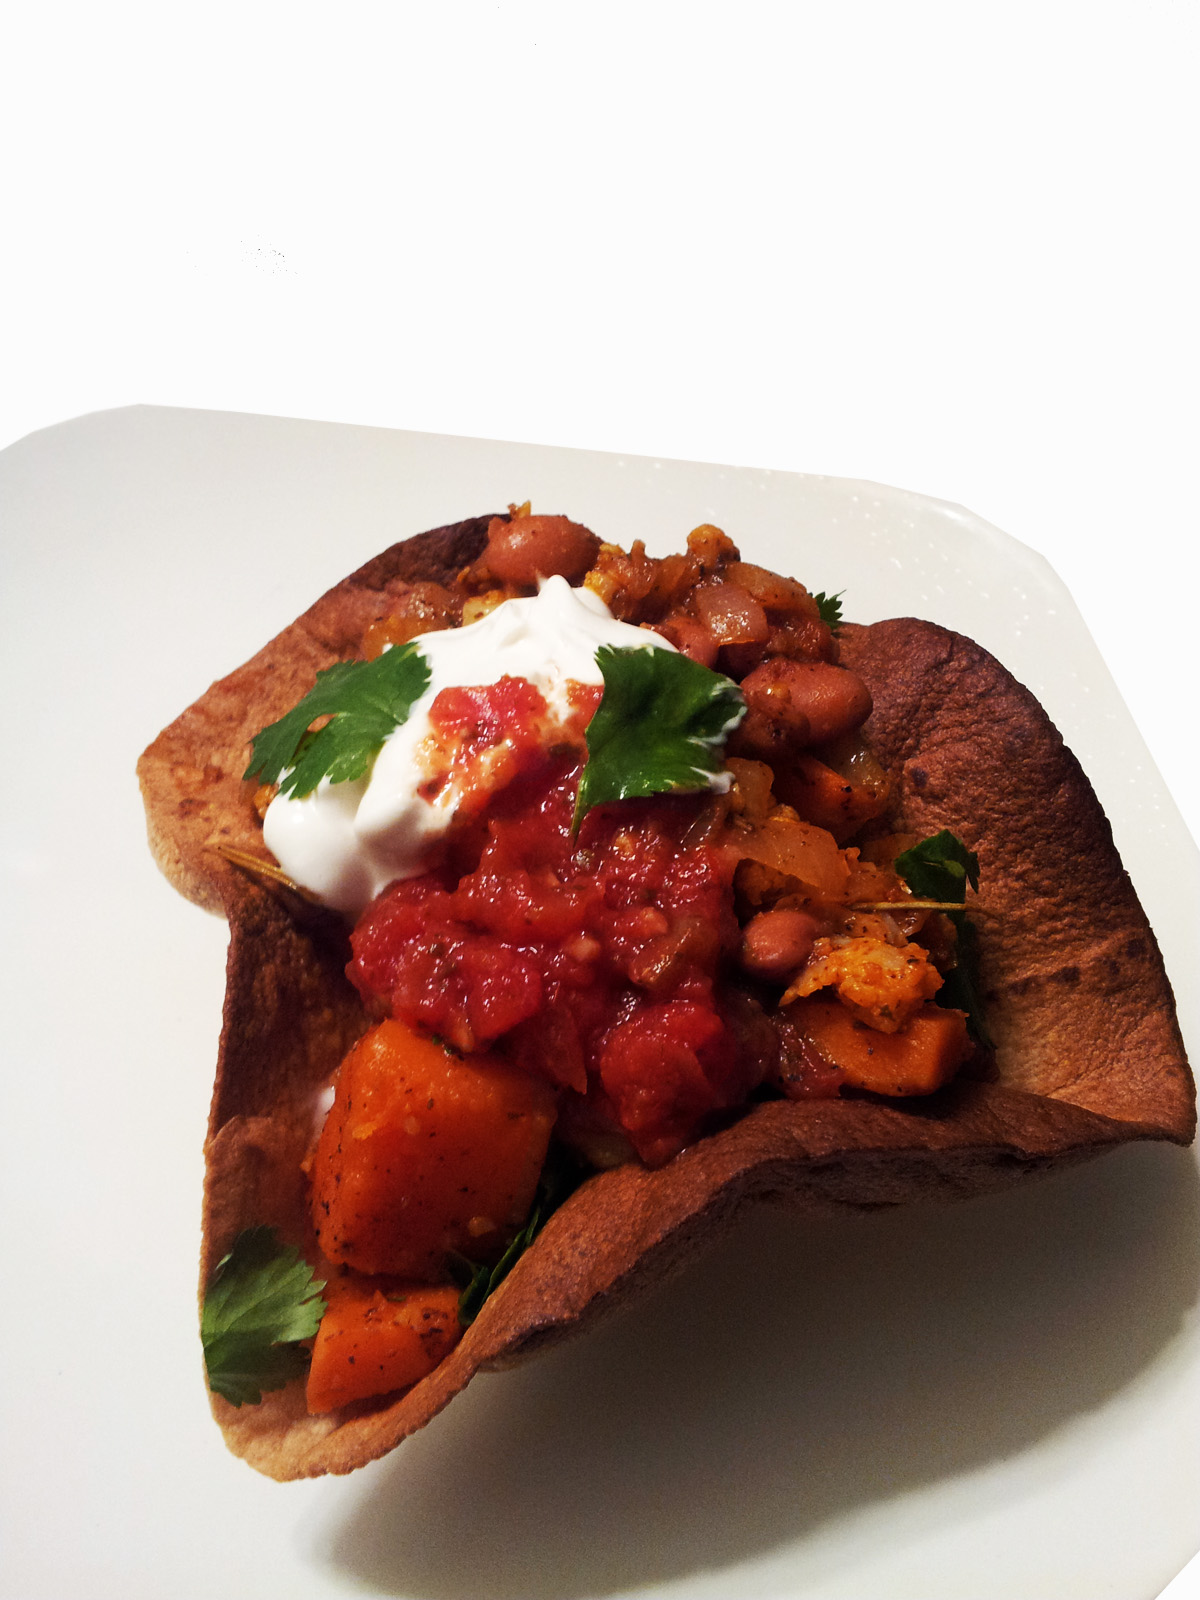 ... of Meat: Tostadas with Cauliflower & Sweet Potato in Oven Baked Shells